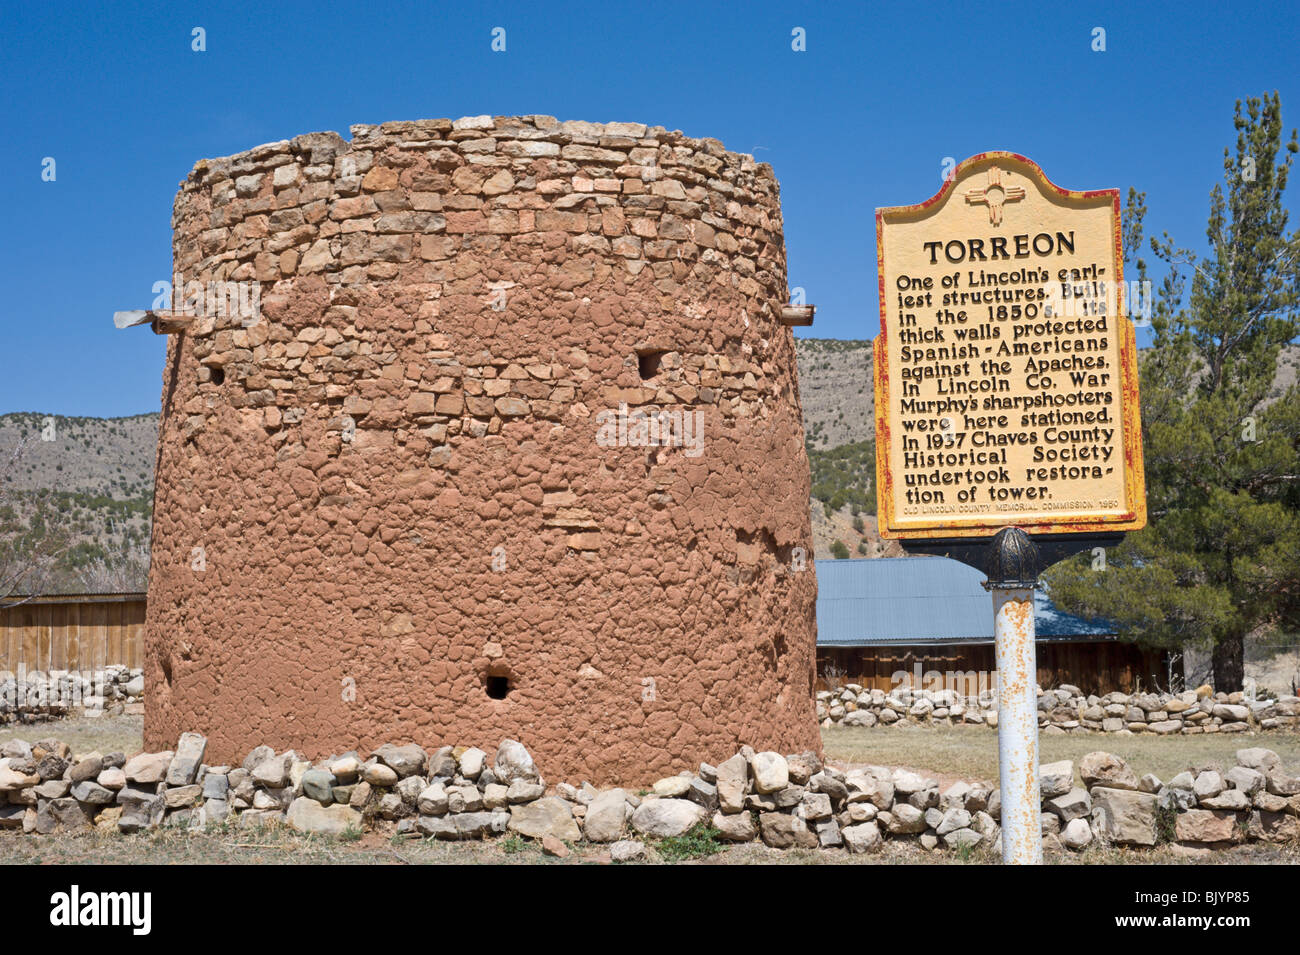 The Adobe Torreon Stands As A Remnant Of The Lincoln